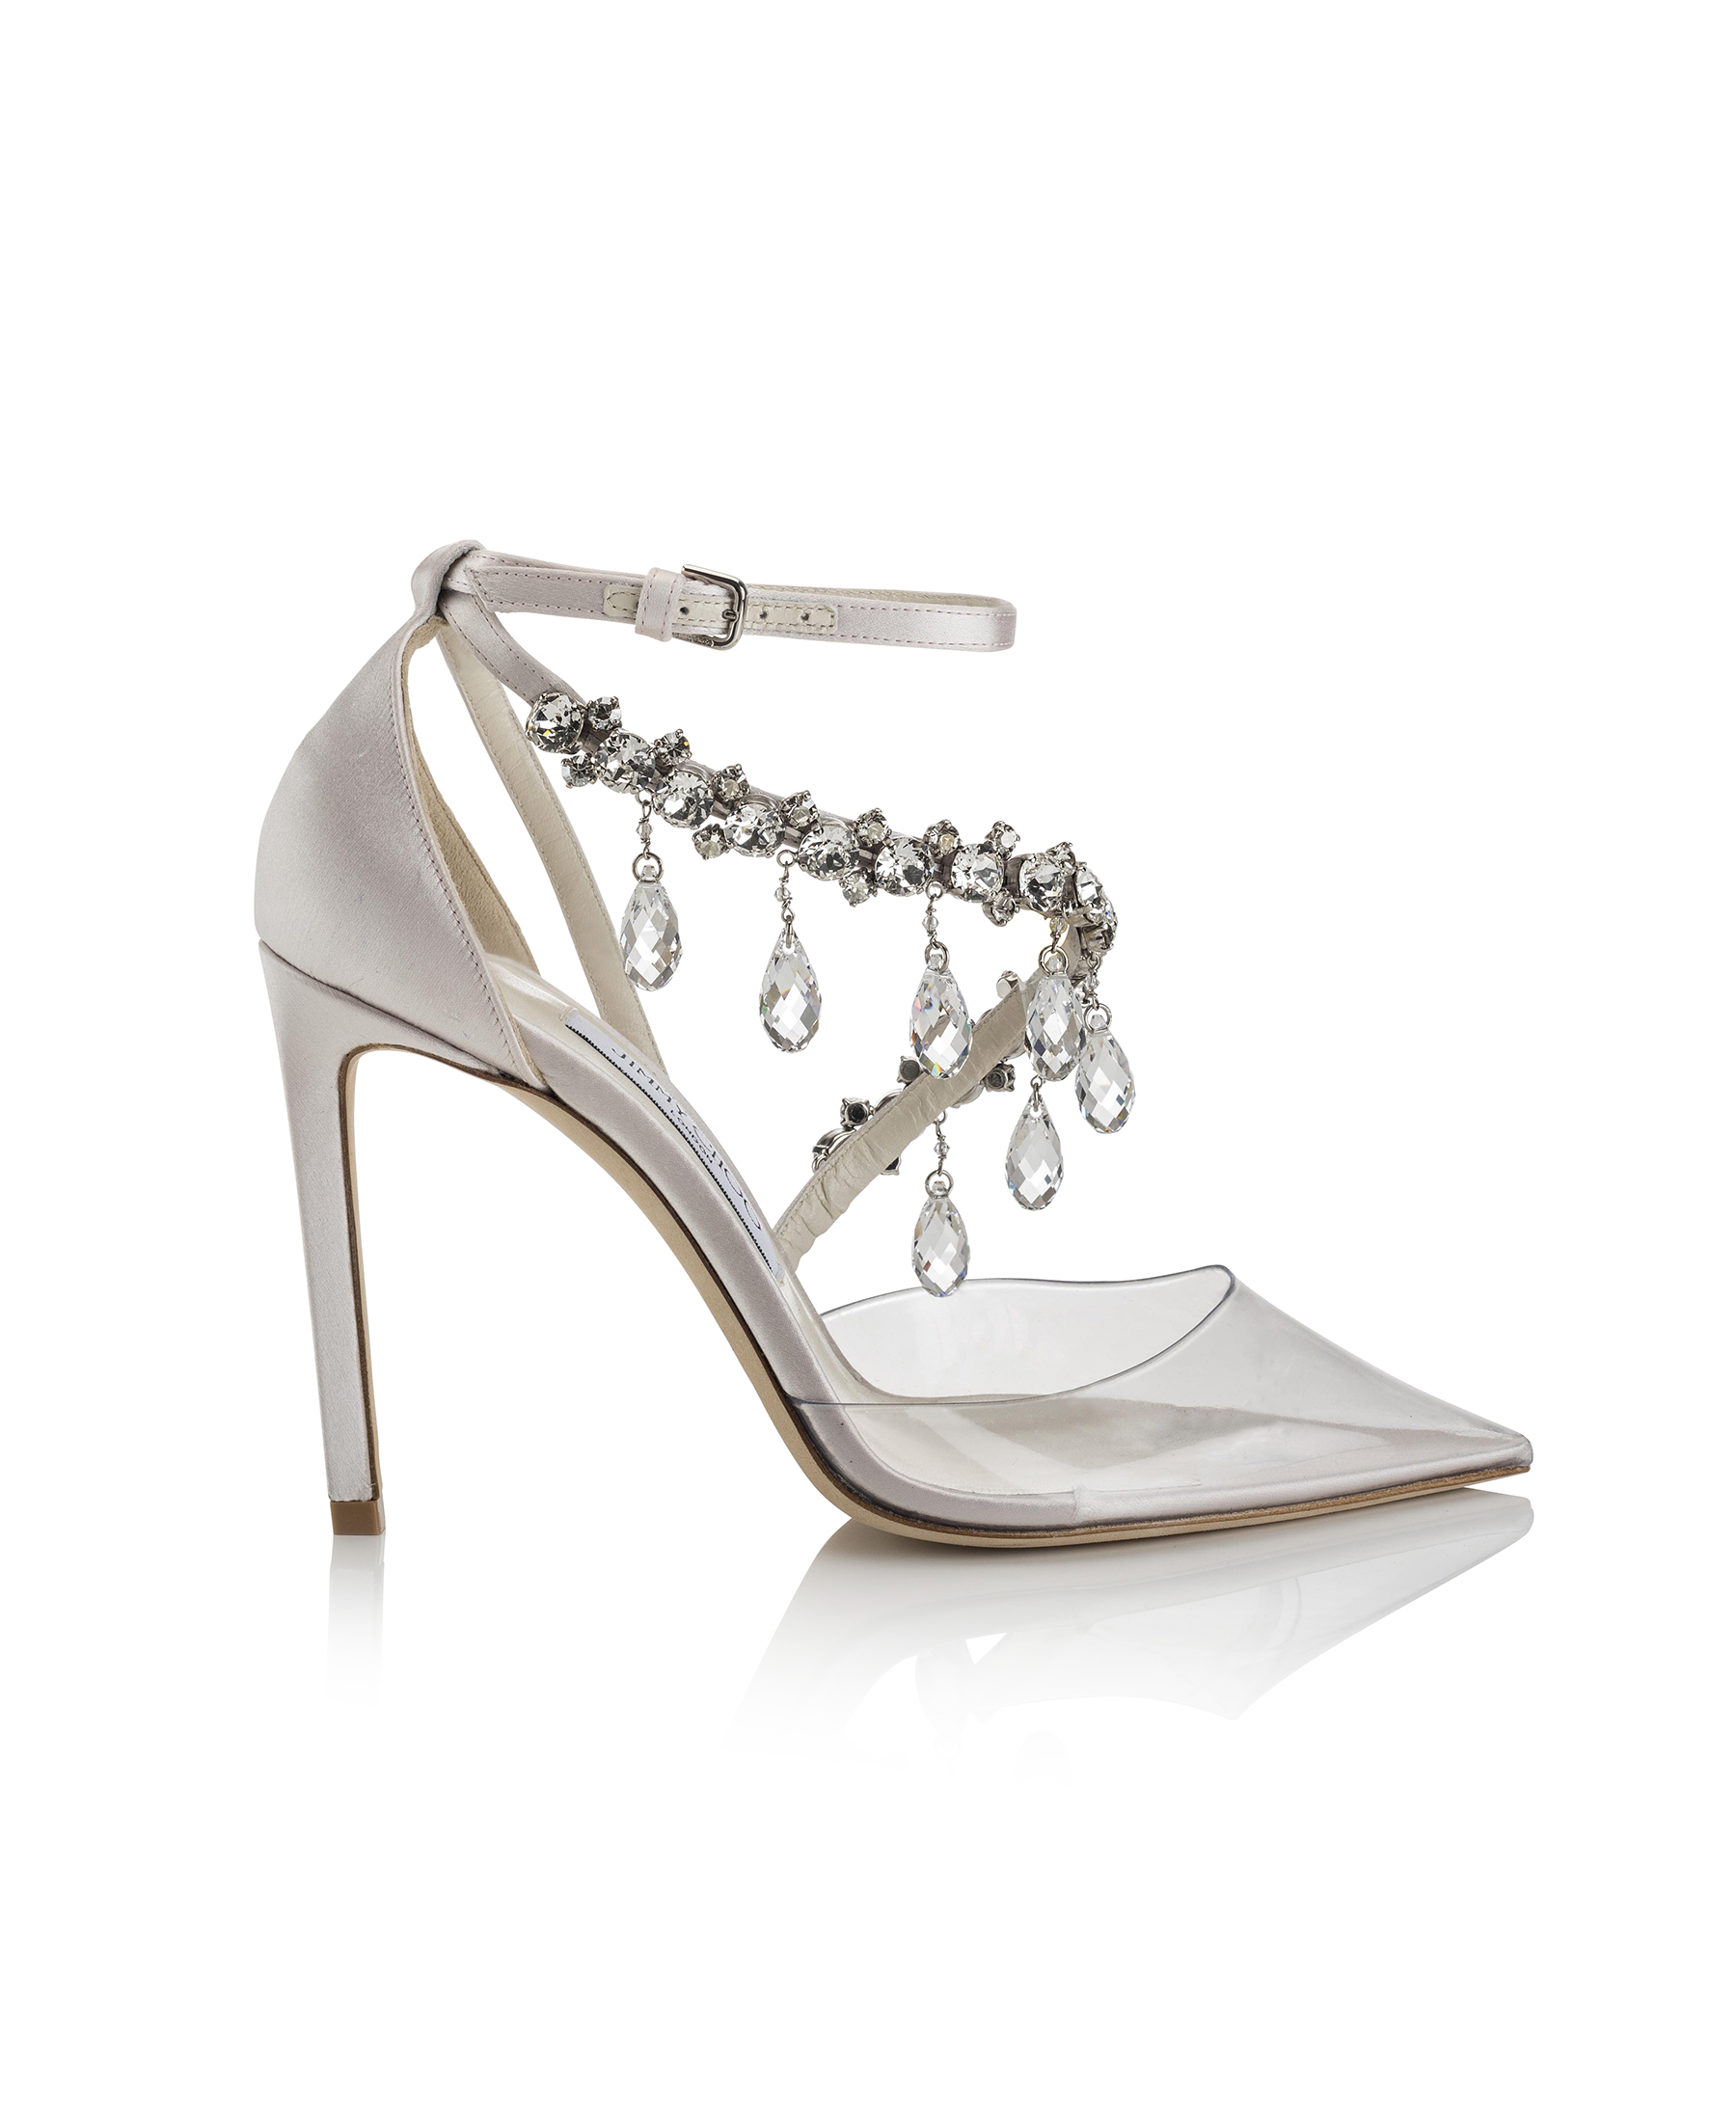 V.COM_OFF-WHITE™ C:O JIMMY CHOO_VICTORIA 100 - PLEXI, SATIN W CRYSTALS - TRANSPARENT, CHALK, CRYSTAL